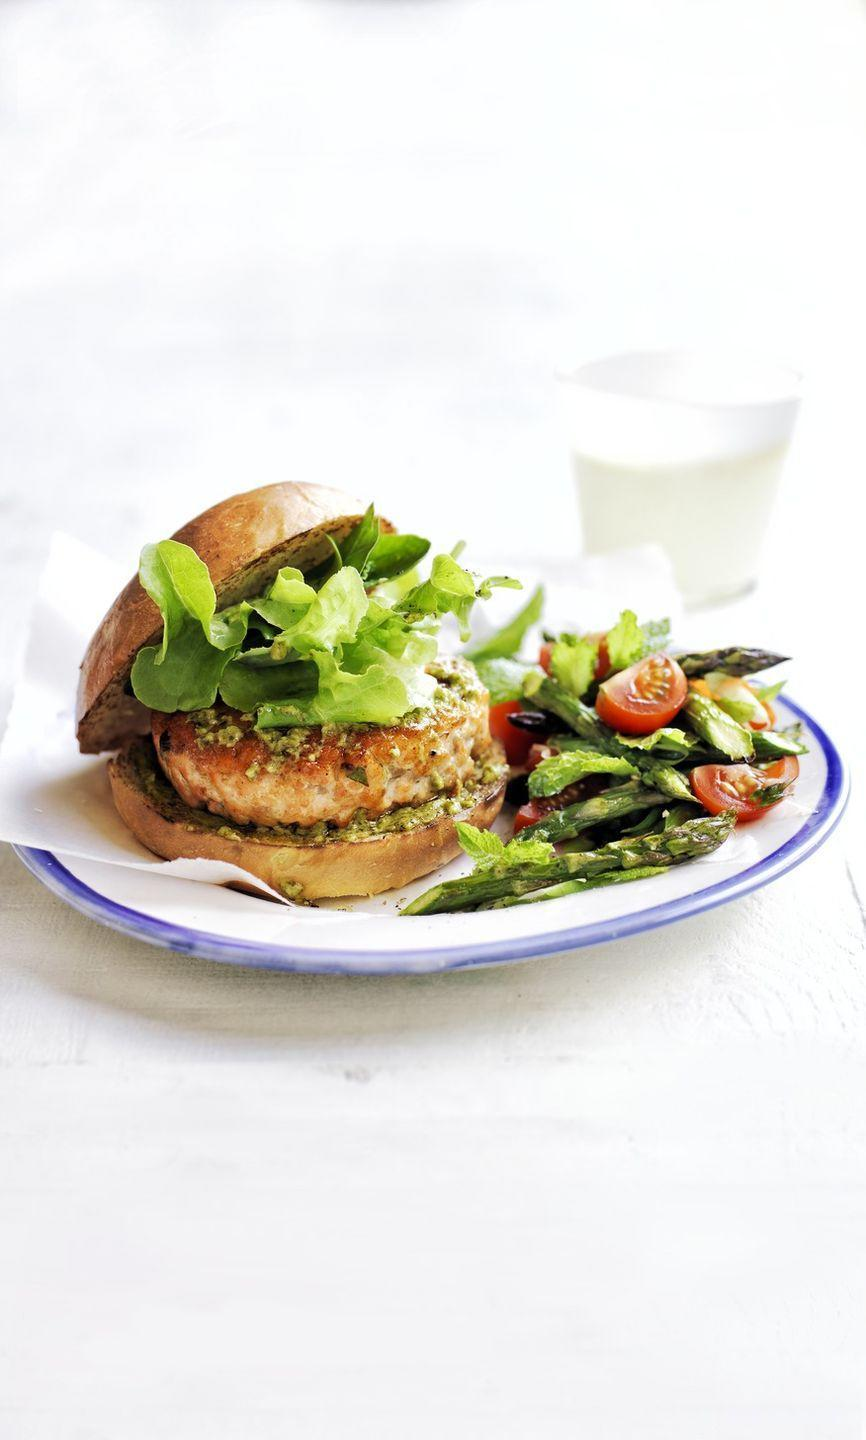 "<p>You can make this dish ahead of time by forming the patties and freezing them for up to 1 month. Cook from frozen at 425 degrees F until warm and cooked through, 15 to 20 minutes. Plus, salmon contains heart-healthy <a href=""https://www.heart.org/en/healthy-living/healthy-eating/eat-smart/fats/fish-and-omega-3-fatty-acids"" rel=""nofollow noopener"" target=""_blank"" data-ylk=""slk:omega-3 fatty acids"" class=""link rapid-noclick-resp"">omega-3 fatty acids</a>.</p><p><a href=""https://www.womansday.com/food-recipes/food-drinks/recipes/a50193/pesto-salmon-burgers-asparagus-tomato-salad-recipe-wdy0515/"" rel=""nofollow noopener"" target=""_blank"" data-ylk=""slk:Get the Pesto Salmon Burgers with Asparagus and Tomato Salad recipe."" class=""link rapid-noclick-resp""><em><strong>Get the Pesto Salmon Burgers with Asparagus and Tomato Salad recipe.</strong></em></a></p>"